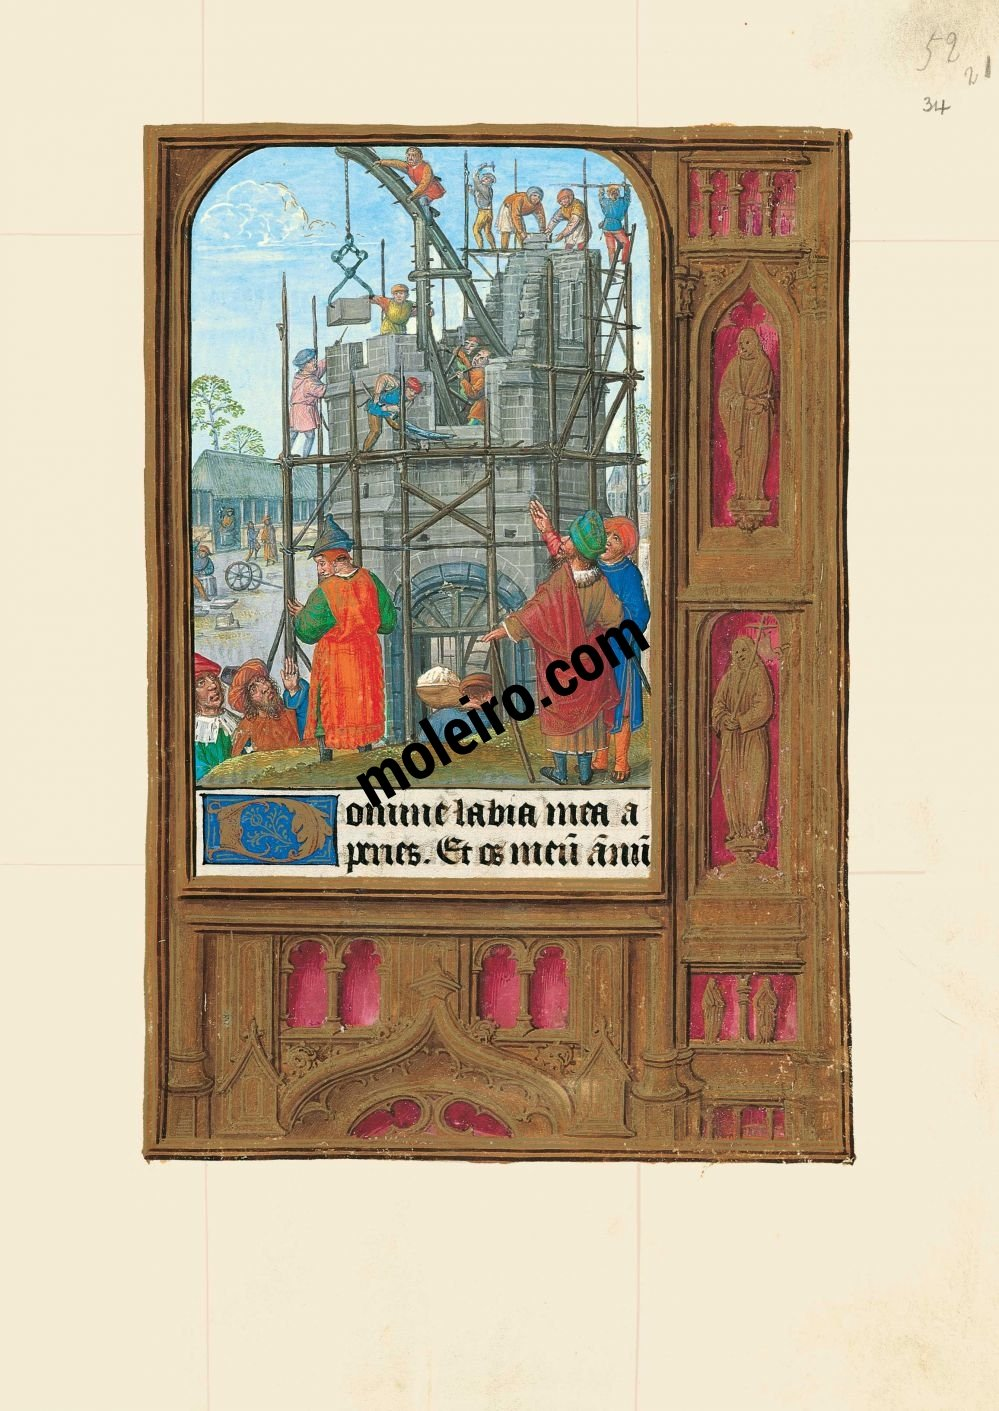 The Hours of Joanna I of Castile, Joanna the Mad (The London Rothschild Prayerbook) f. 34r, Tower of Babel